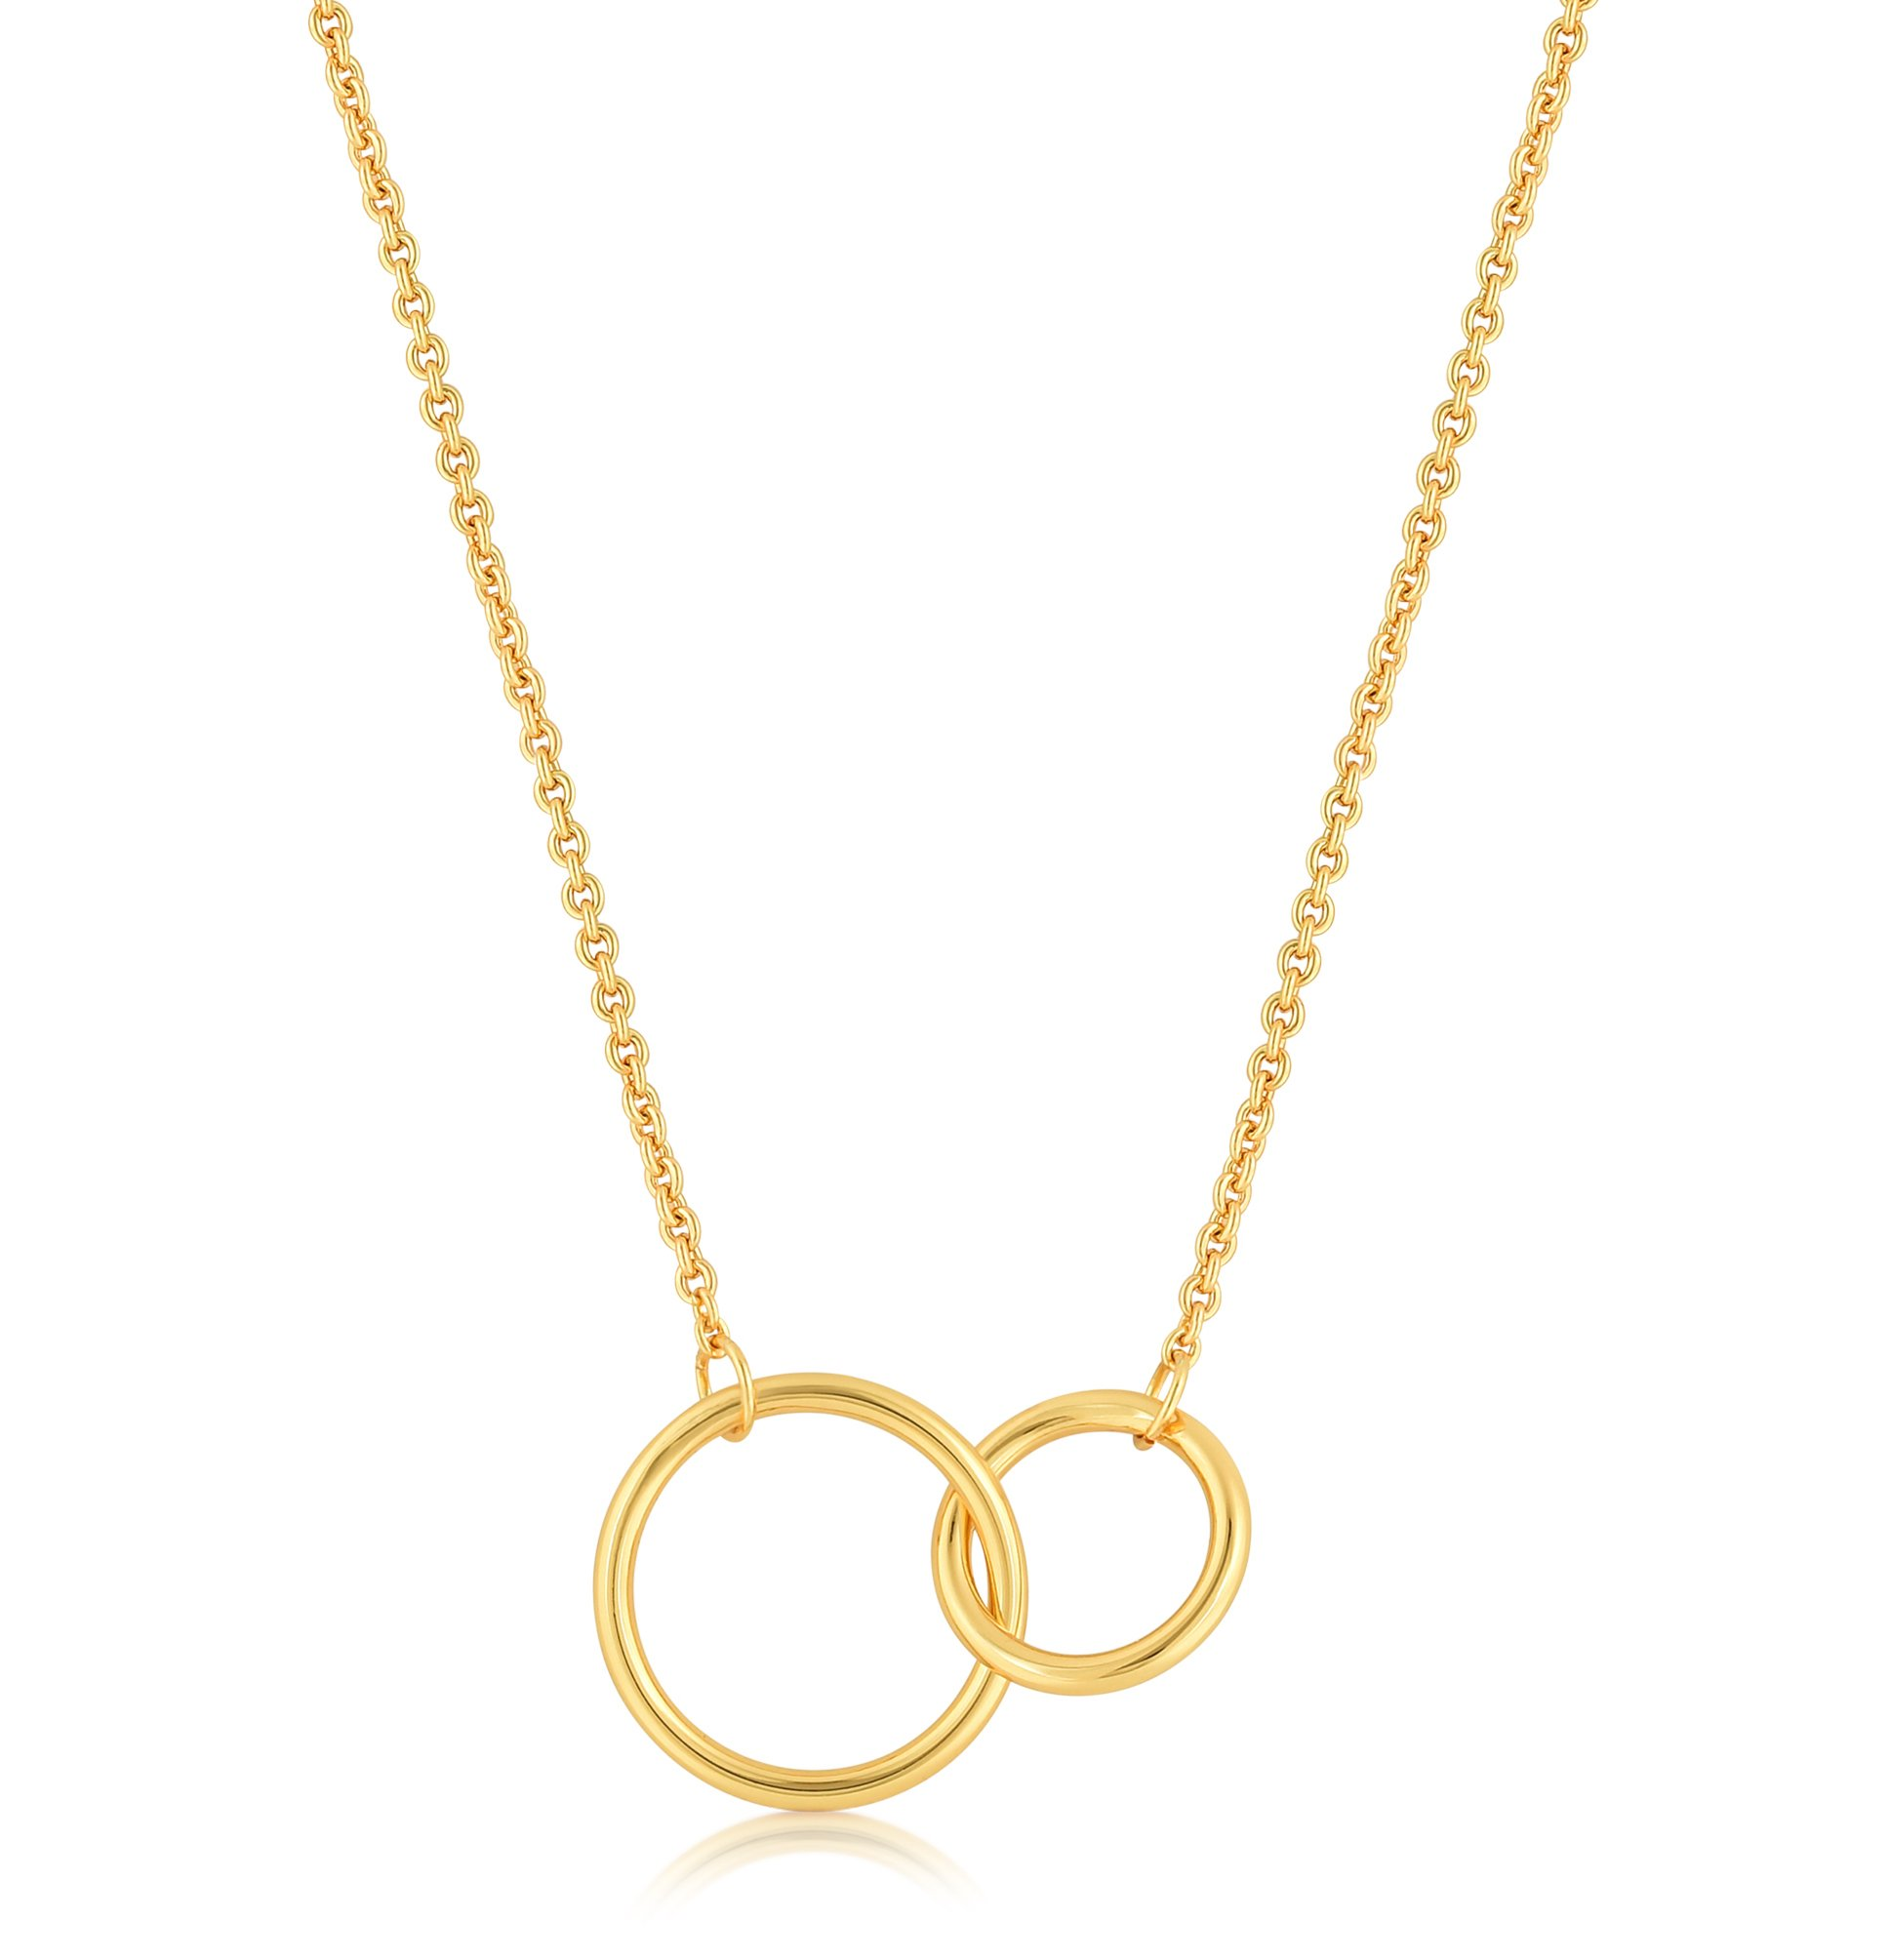 ed83cc3b8 Get Quotations · ESCALIE Interlocking Circle Necklace, Double Circle  Necklace, Circle Pendant Necklace, Gold Plated